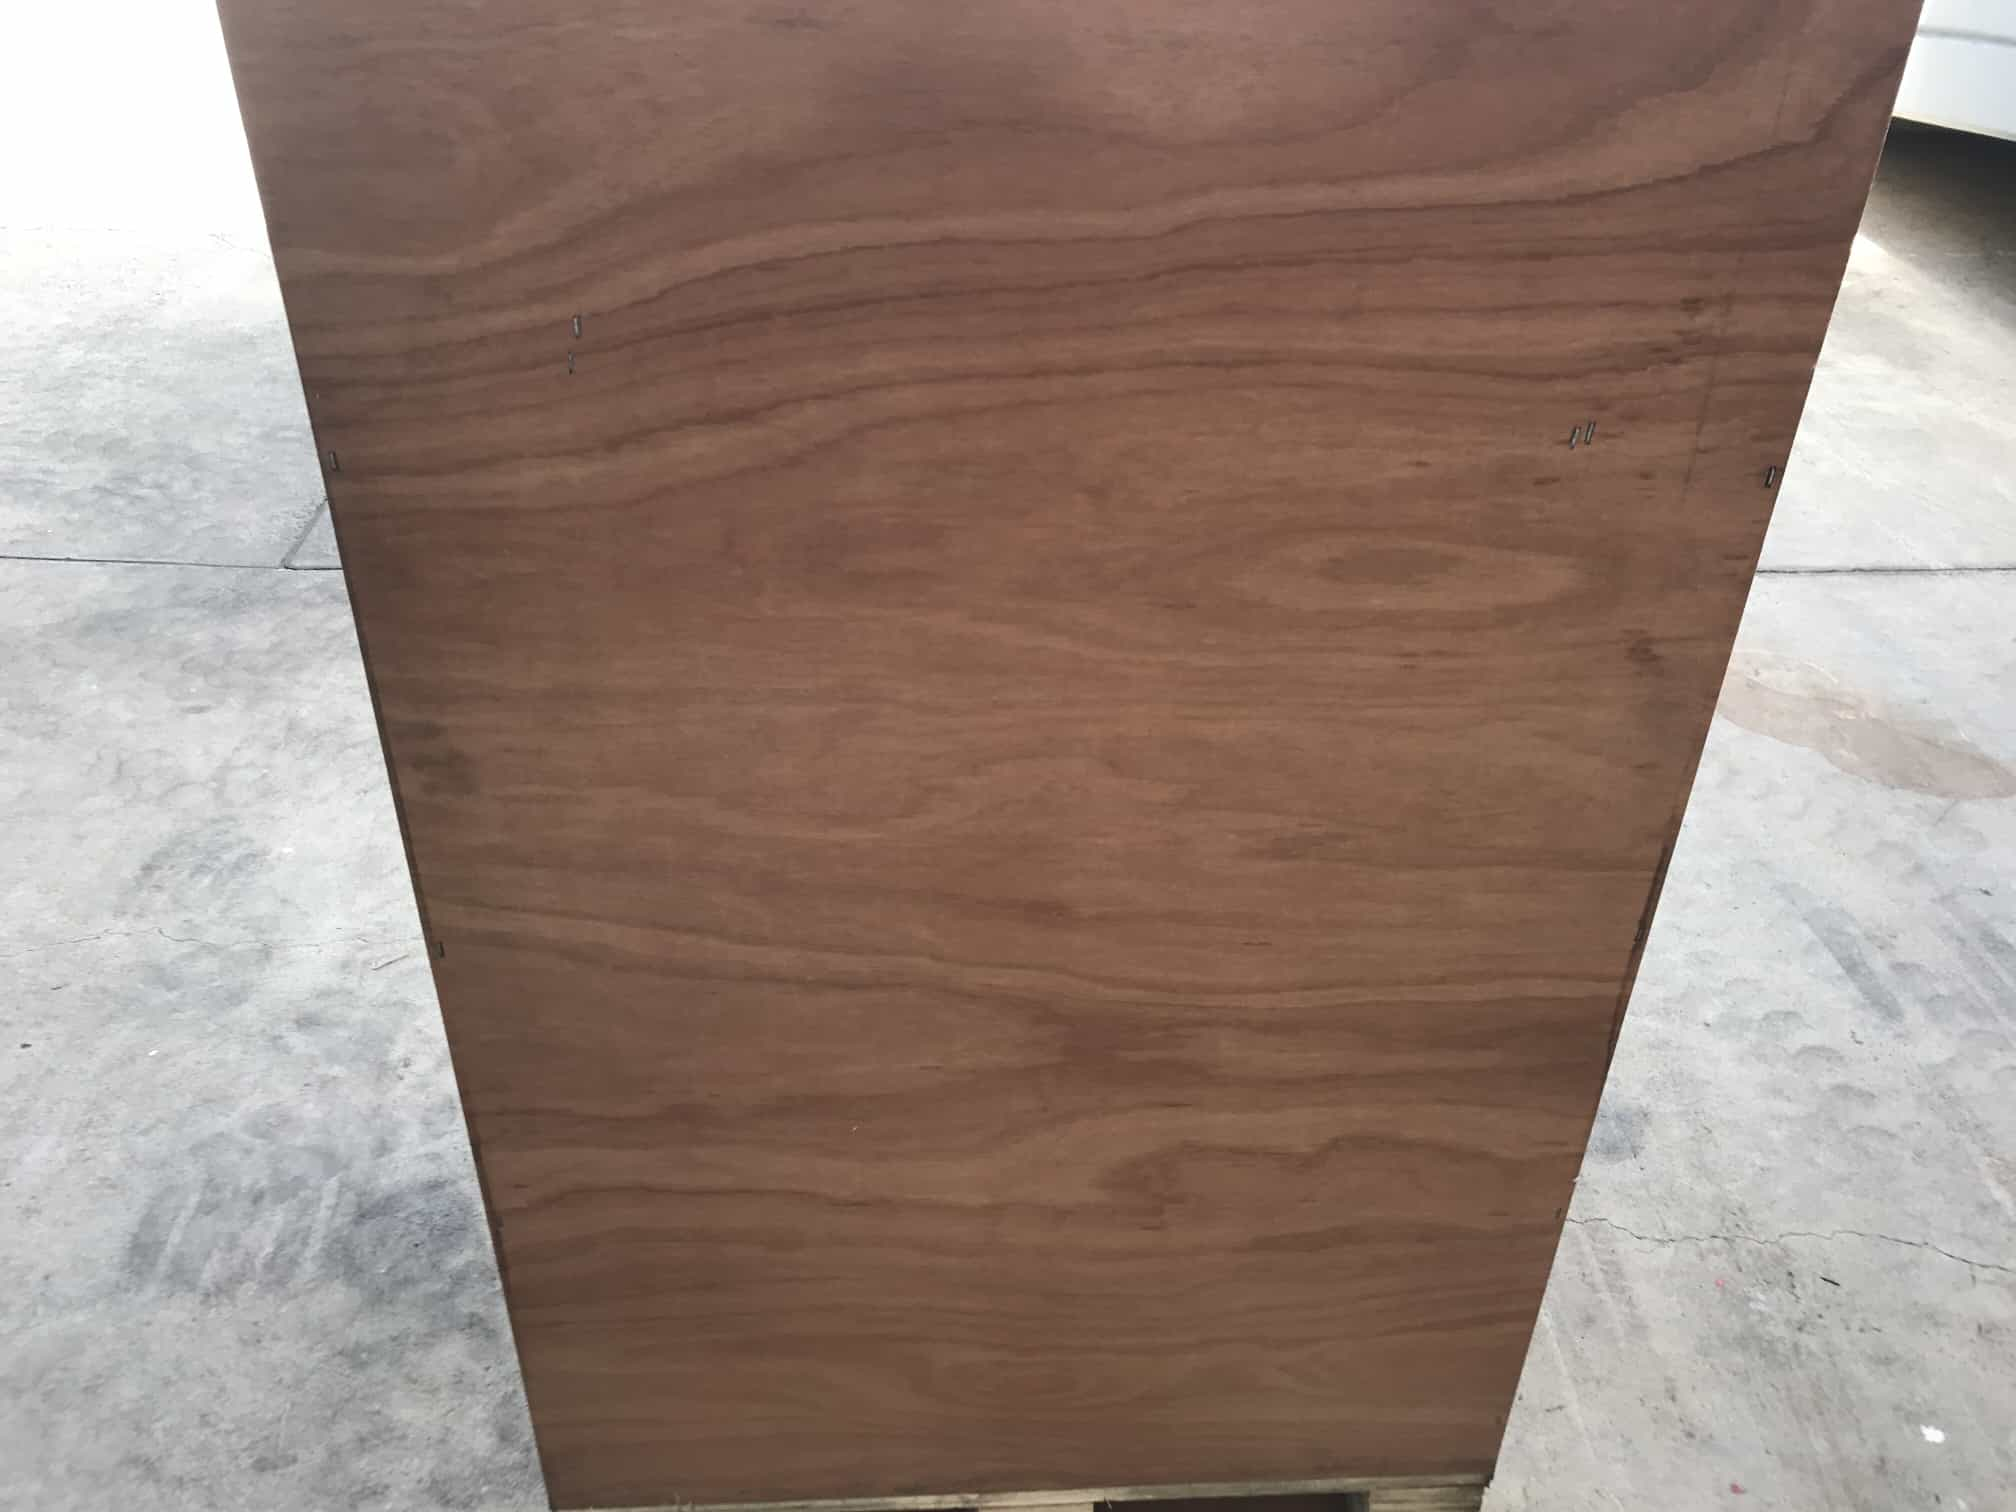 rear of wooden unit